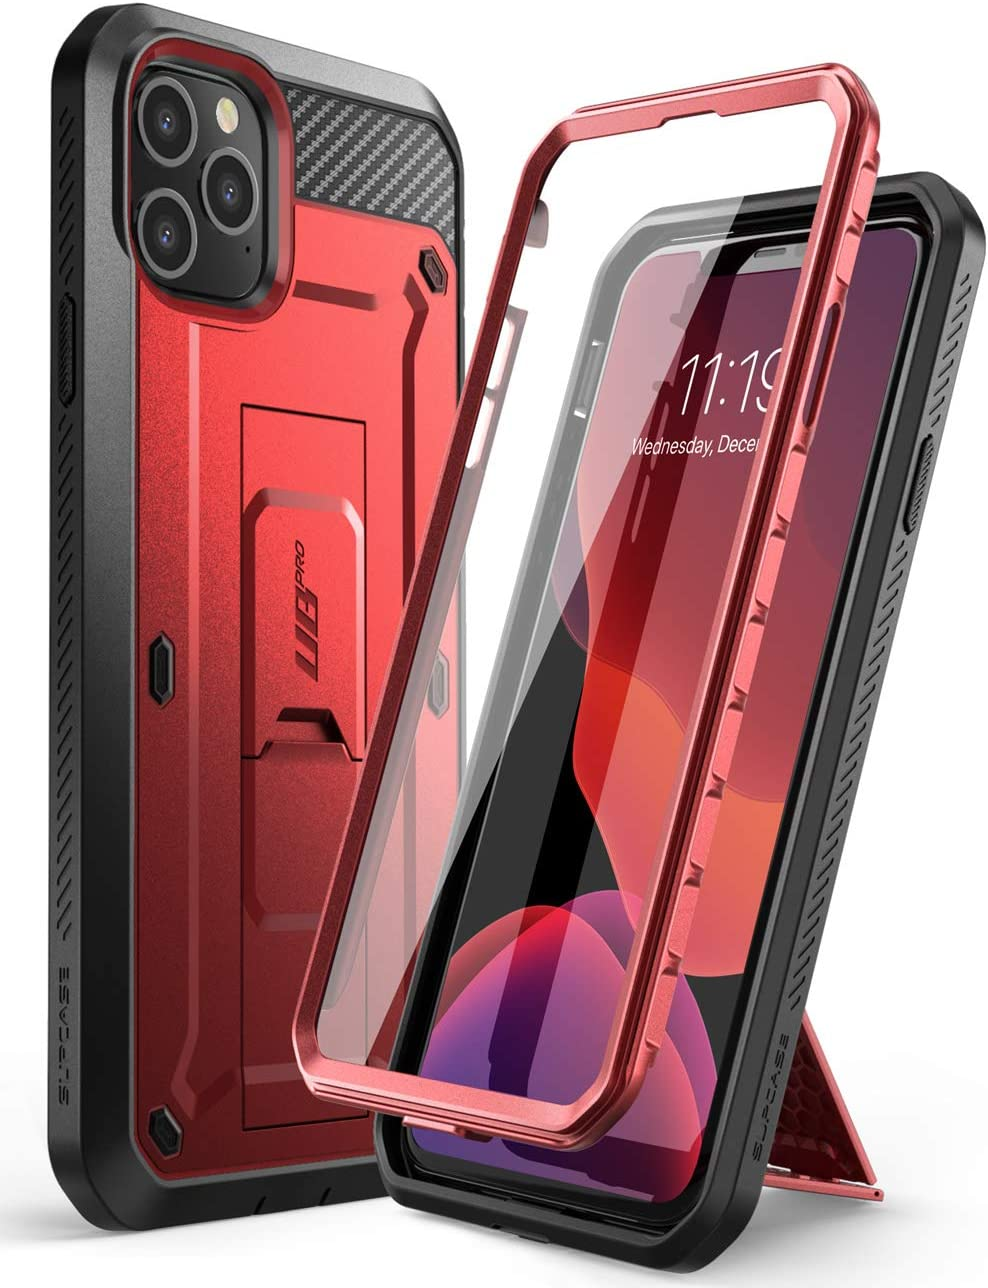 SUPCASE Unicorn Beetle Pro Series Phone Case Designed for iPhone 11 Pro Max 6.5 Inch (2019 Release), Built-in Screen Protector Full-Body Rugged Holster Case (MetallicRed)